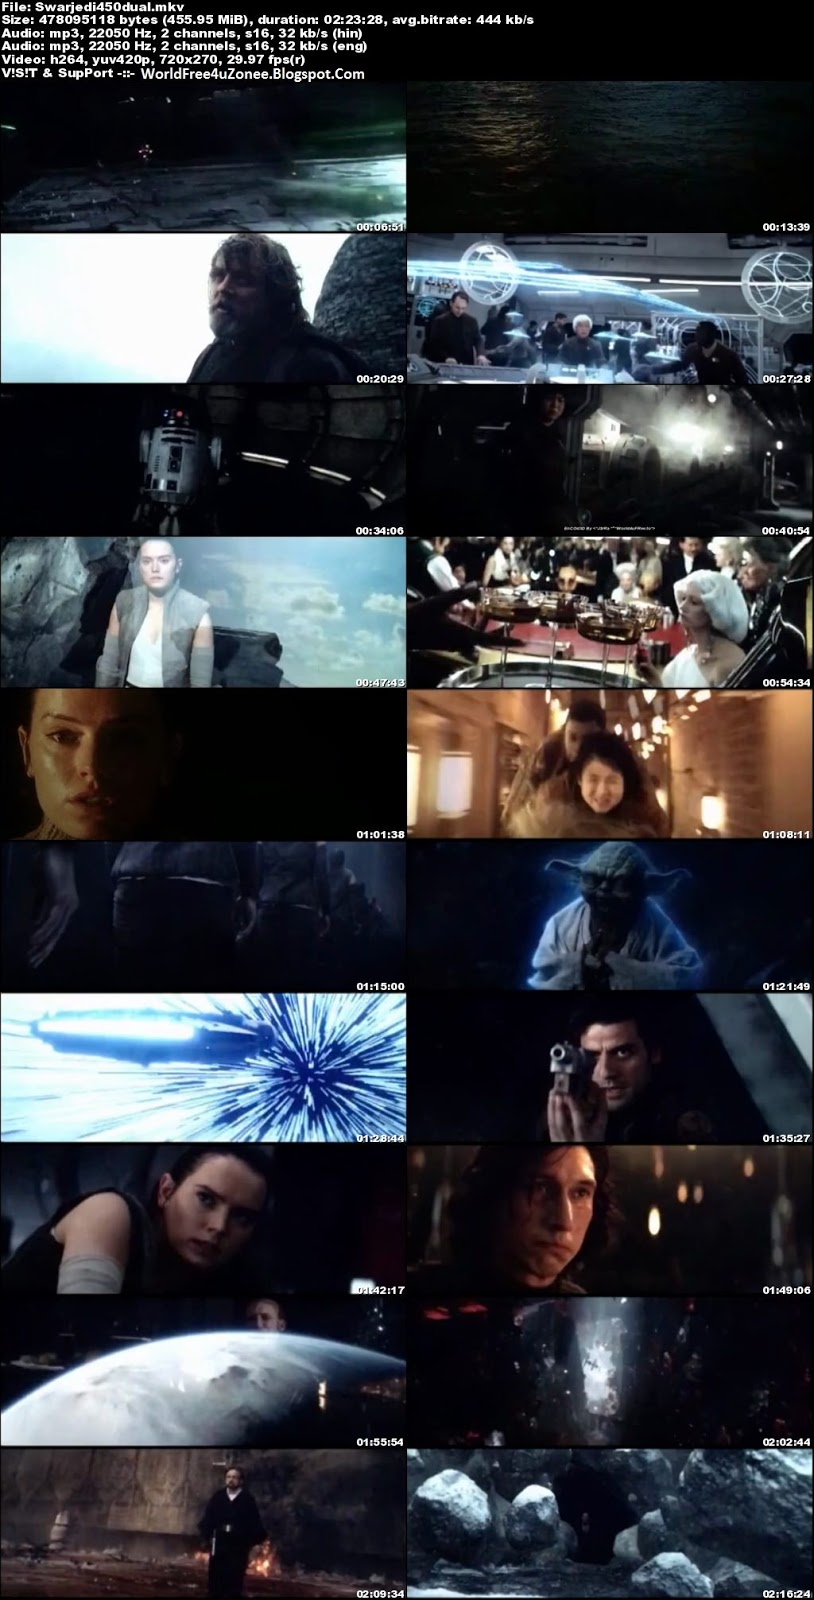 Star Wars The Last Jedi (2017) Dual Audio HDCAM 480p 400MB Full Movie Free Download And Watch Online Latest Hollywood Dual Audio Hindi Dubbed Movies 2017 Free At WorldFree4uZonee.Blogspot.Com